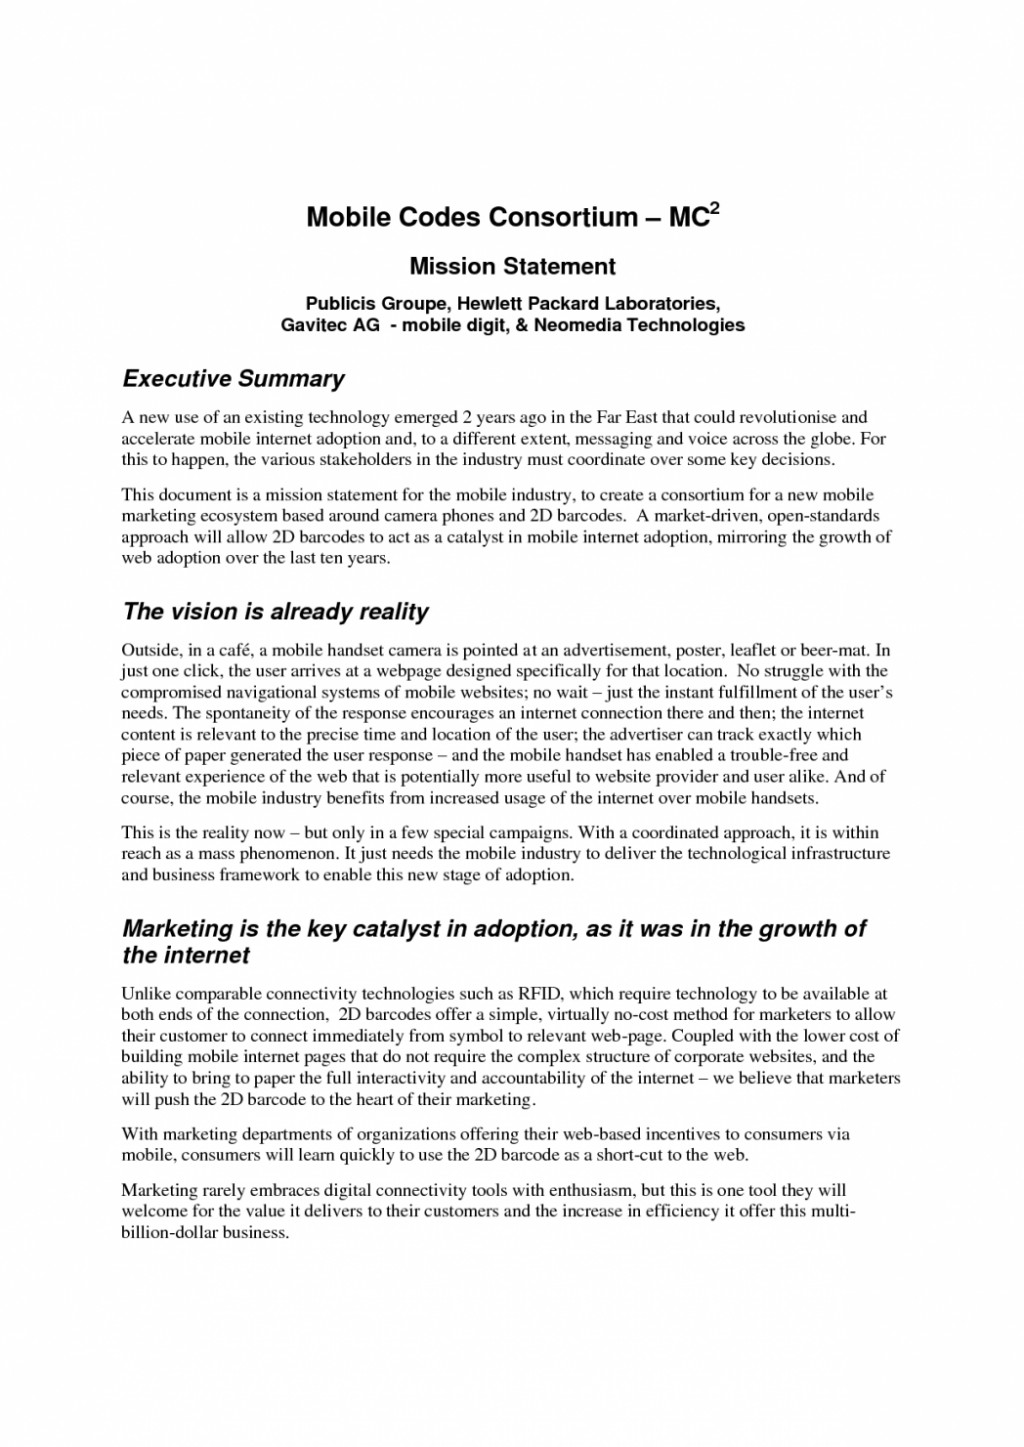 008 Argumentative Essay Capital Punishment About The Death Penalty Arguments For Disney Mission Statement Template H1t Against 1048x1481 Example Beautiful On Should Be Abolished Or Not In Hindi Large